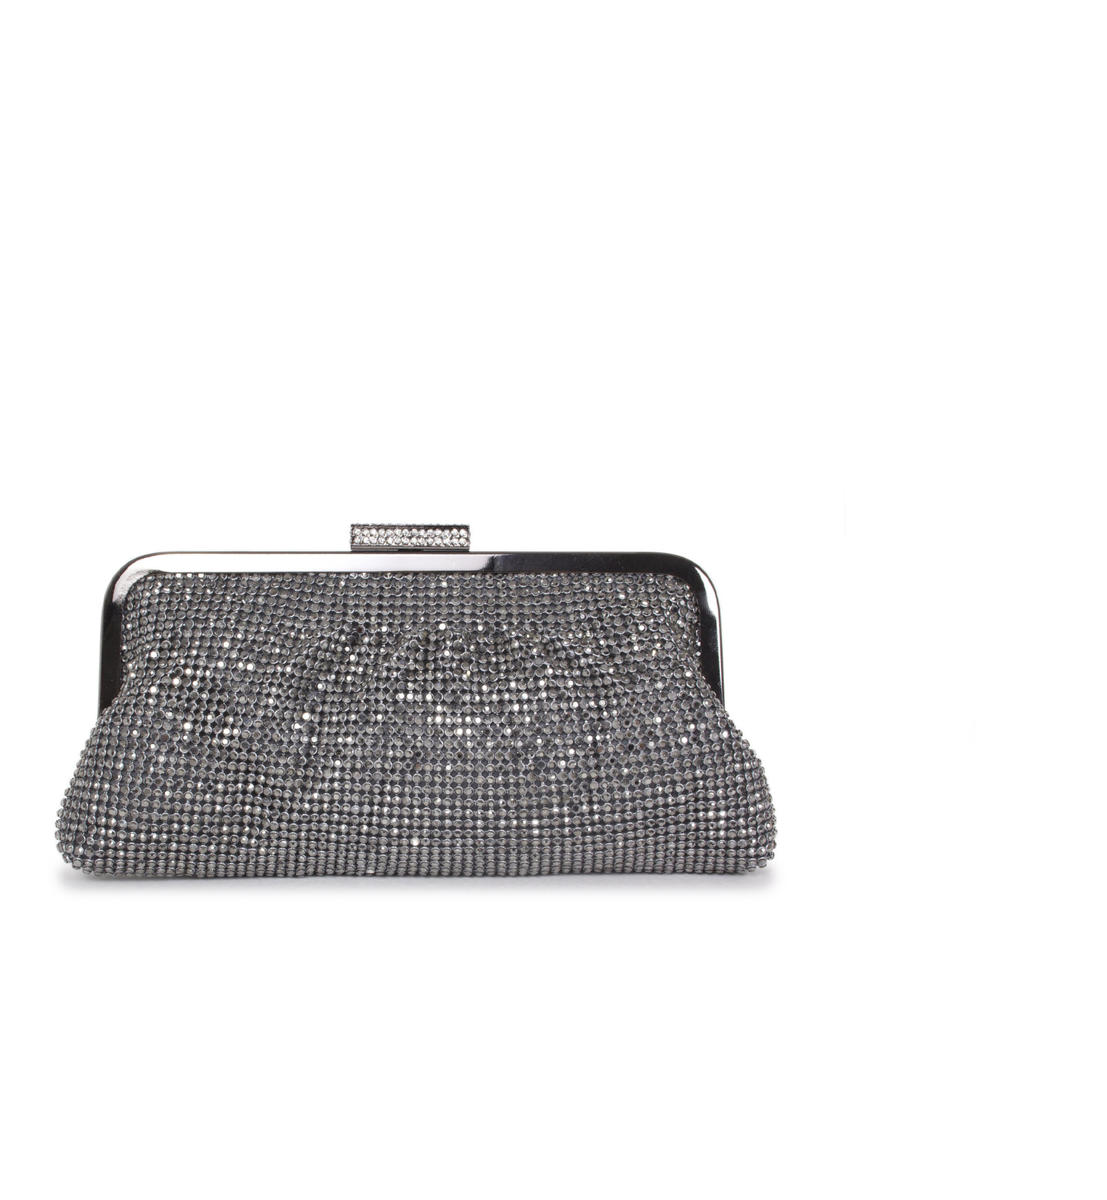 Soft Metal Frame Rhinestone Clutch